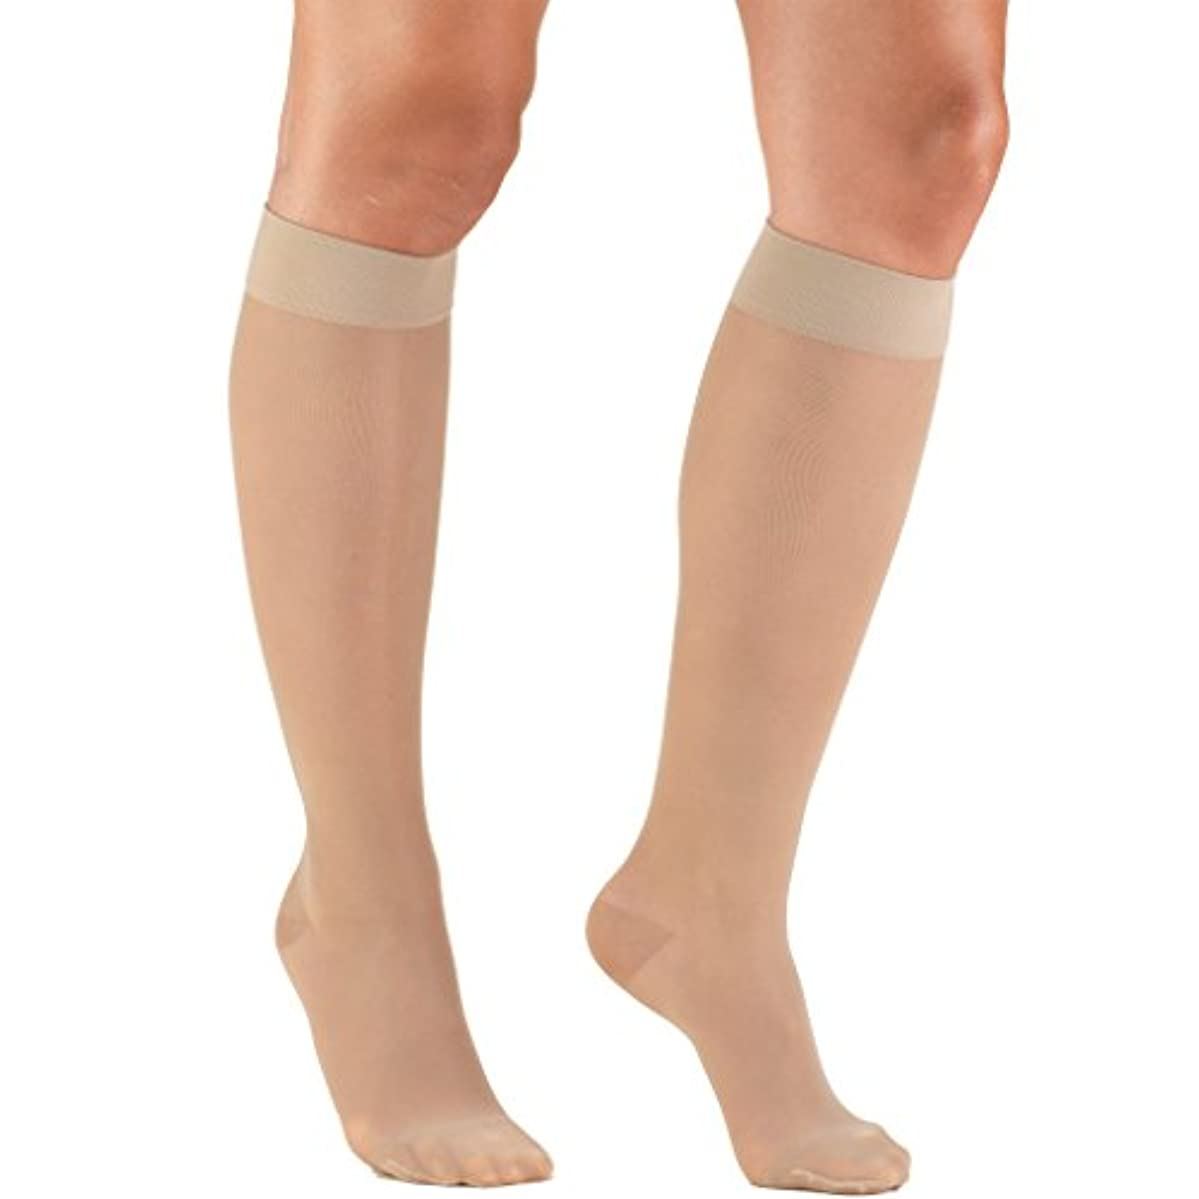 やさしい起きる退屈なTruform 1773ND-XL Womens LITES 15-20 mmHg Knee High Support Stockings - Size- X-Large, Color- Nude